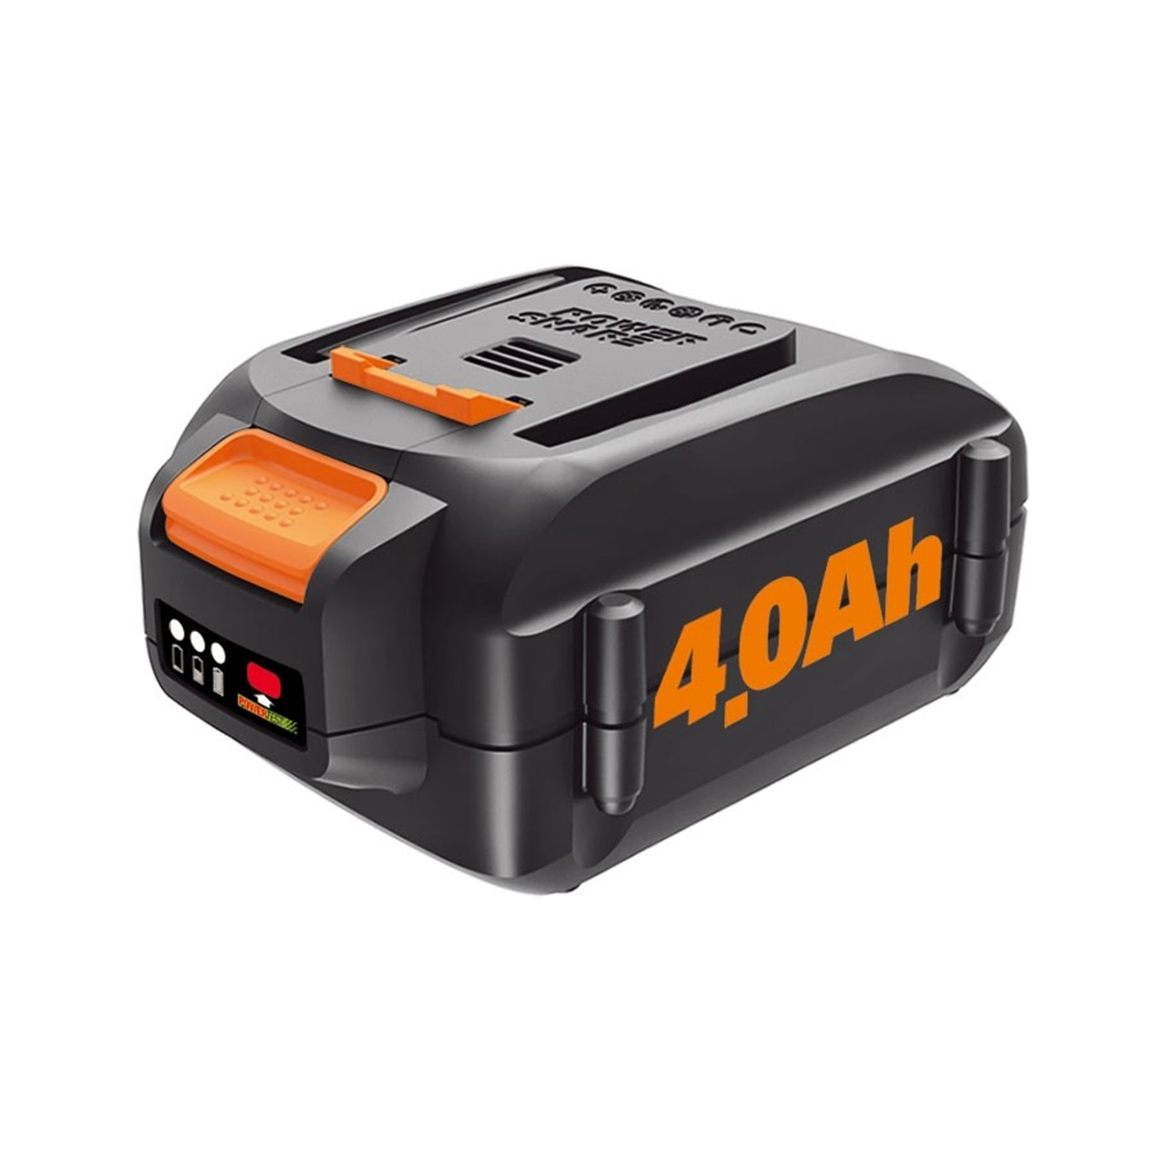 WORX 20-Volt 4.0-Amp Lithium-Ion High Capacity Battery, WA3578